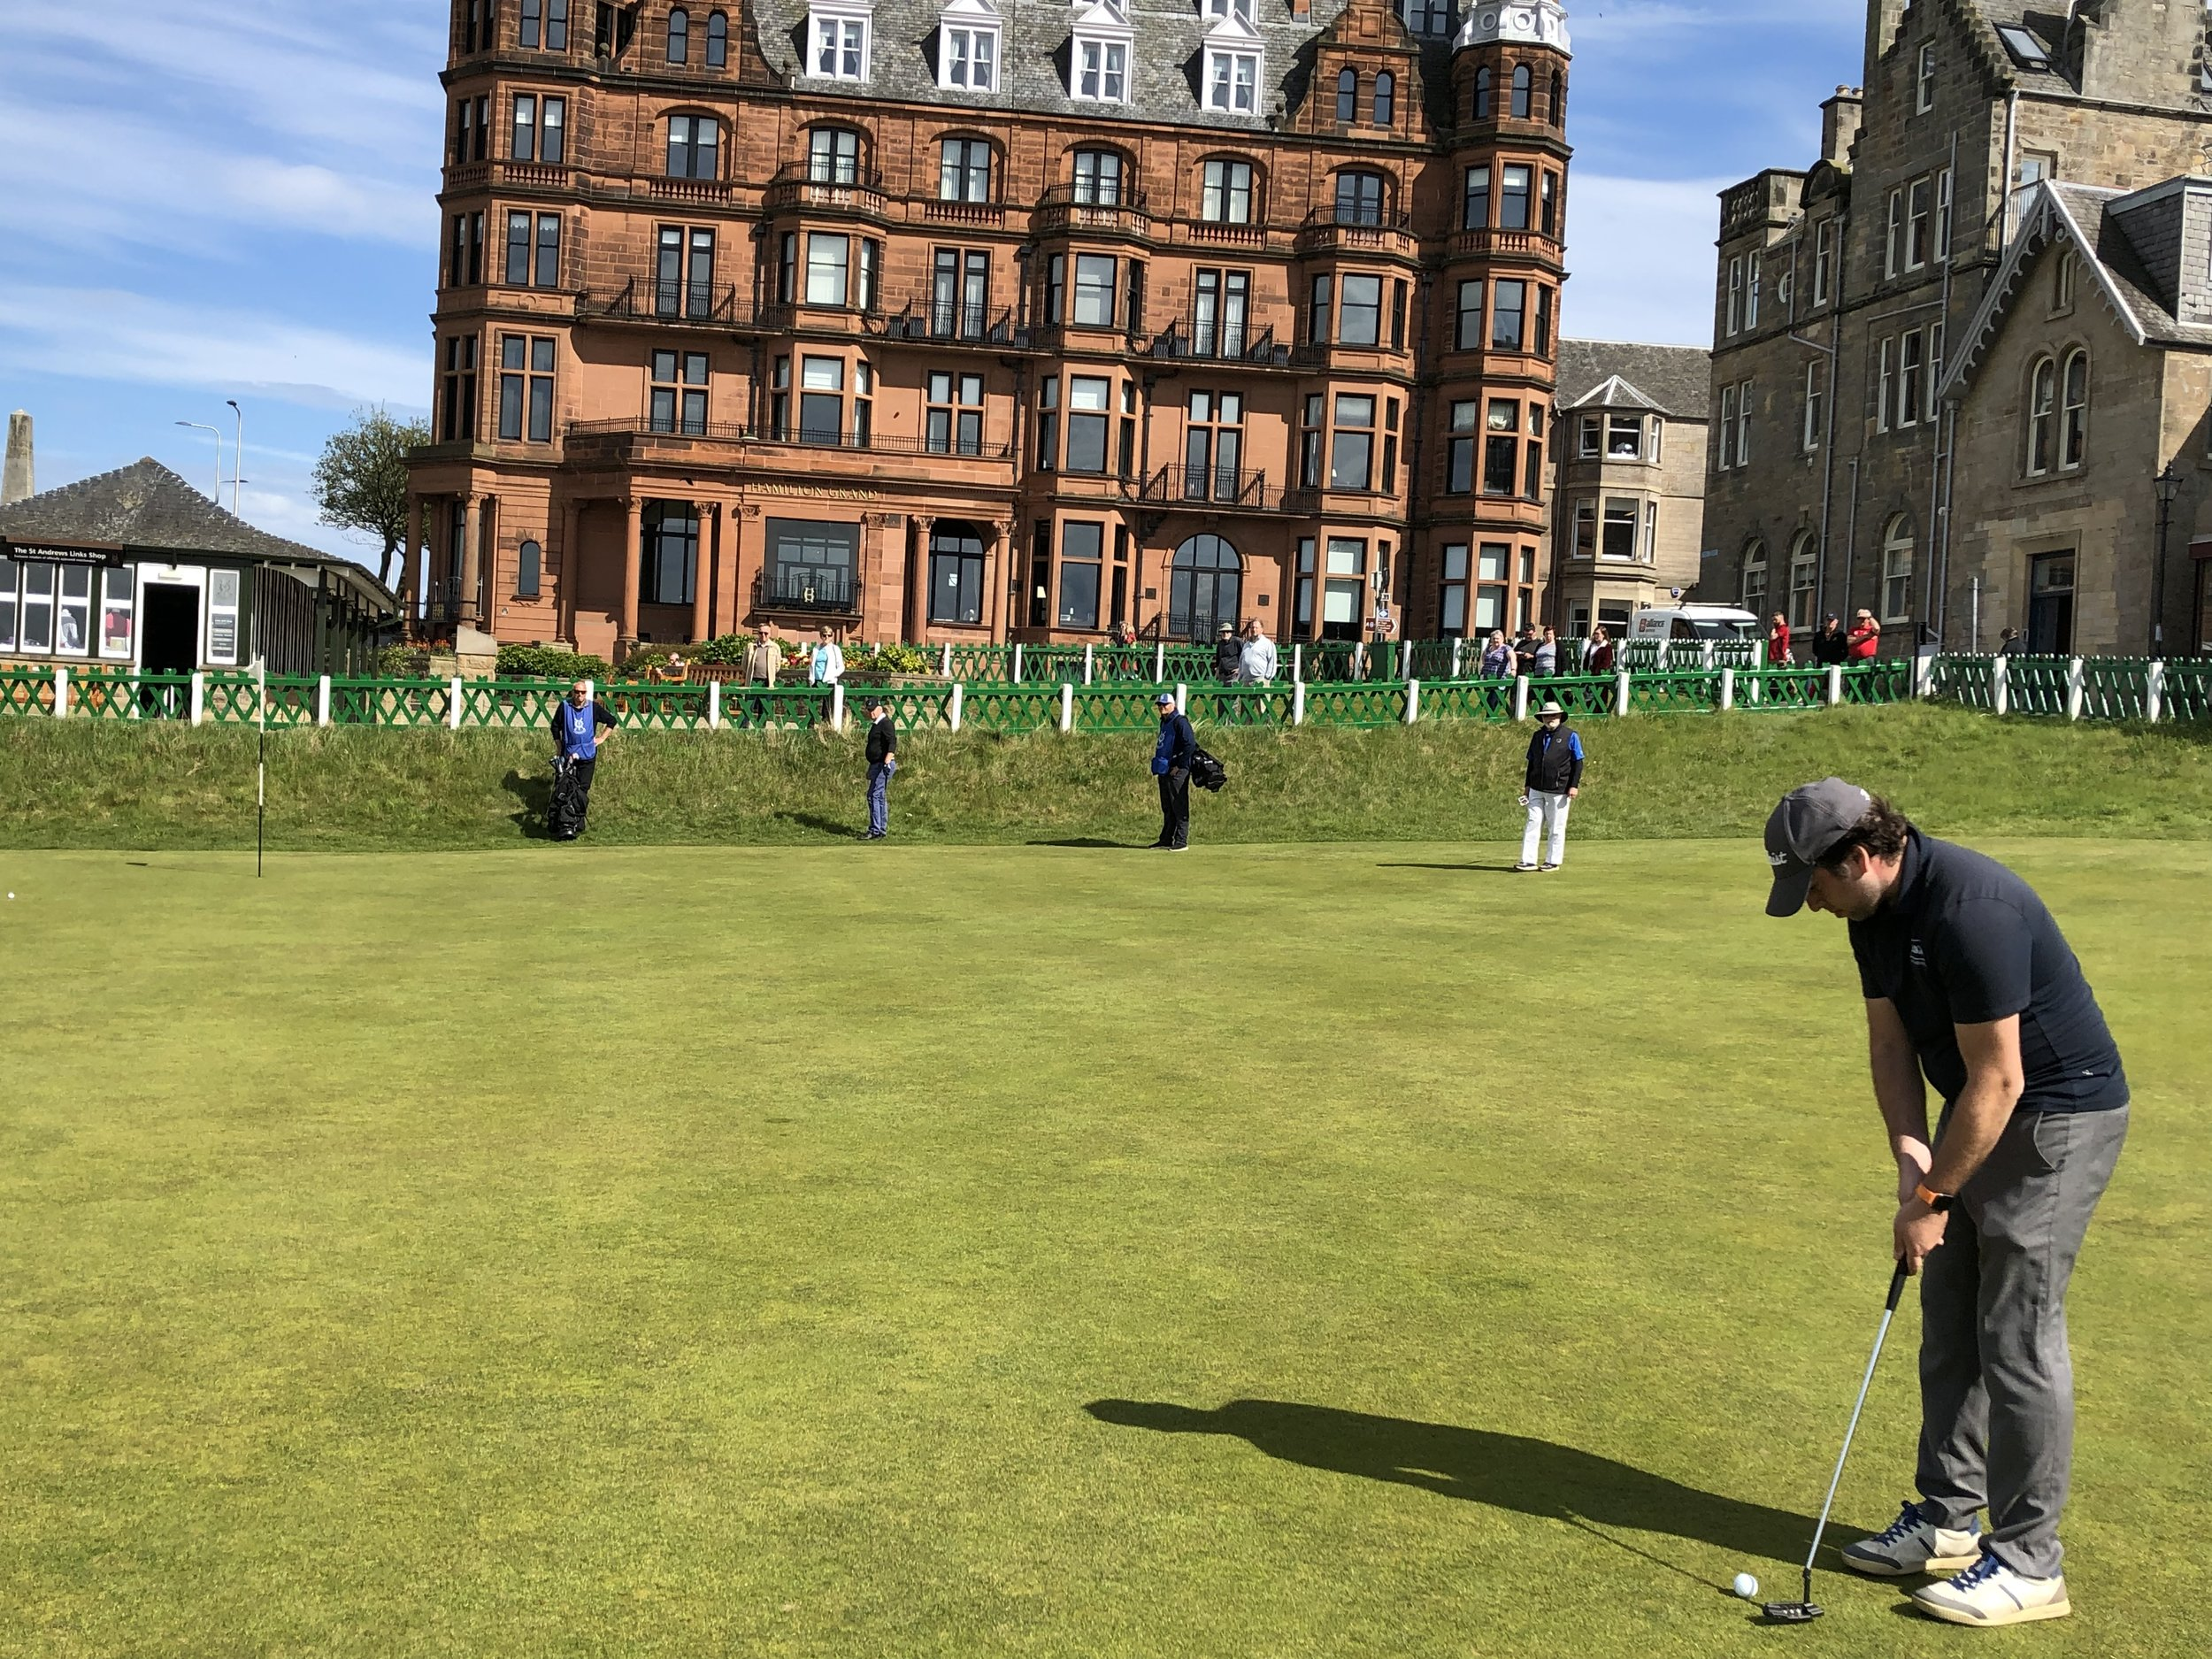 The moment before the putt: The 60 foot make on the 18th hole at the Old Course.